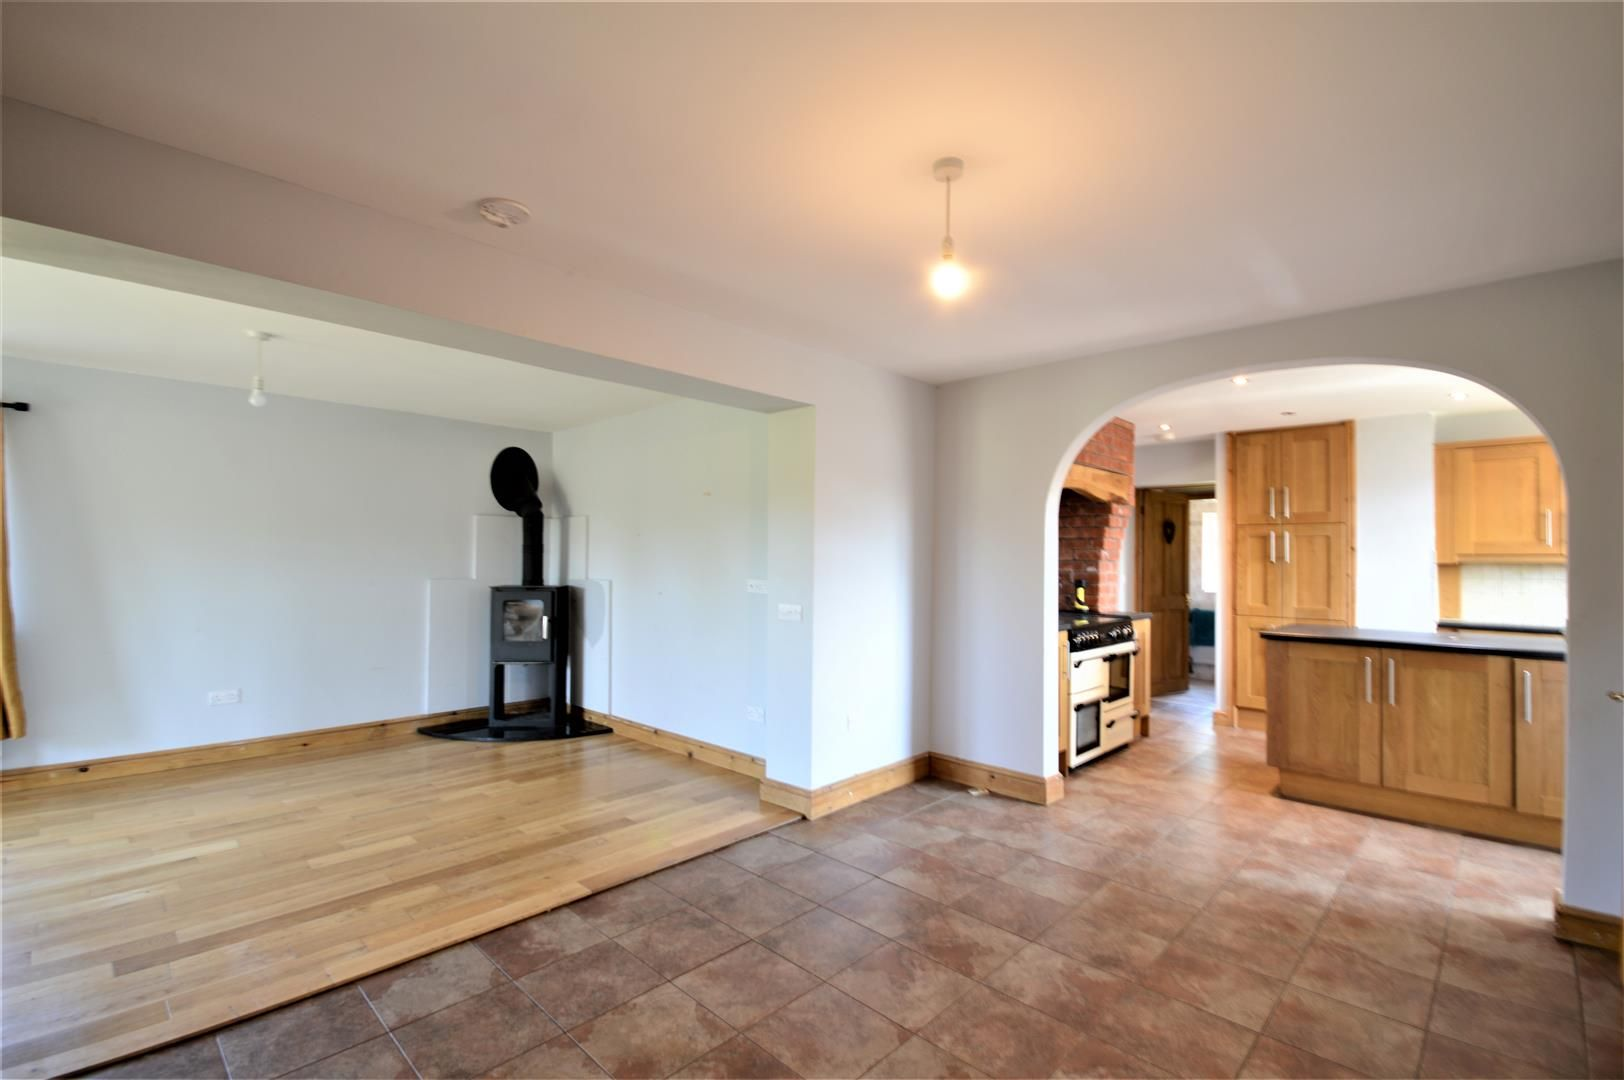 5 bed detached for sale in Sutton St. Nicholas  - Property Image 7